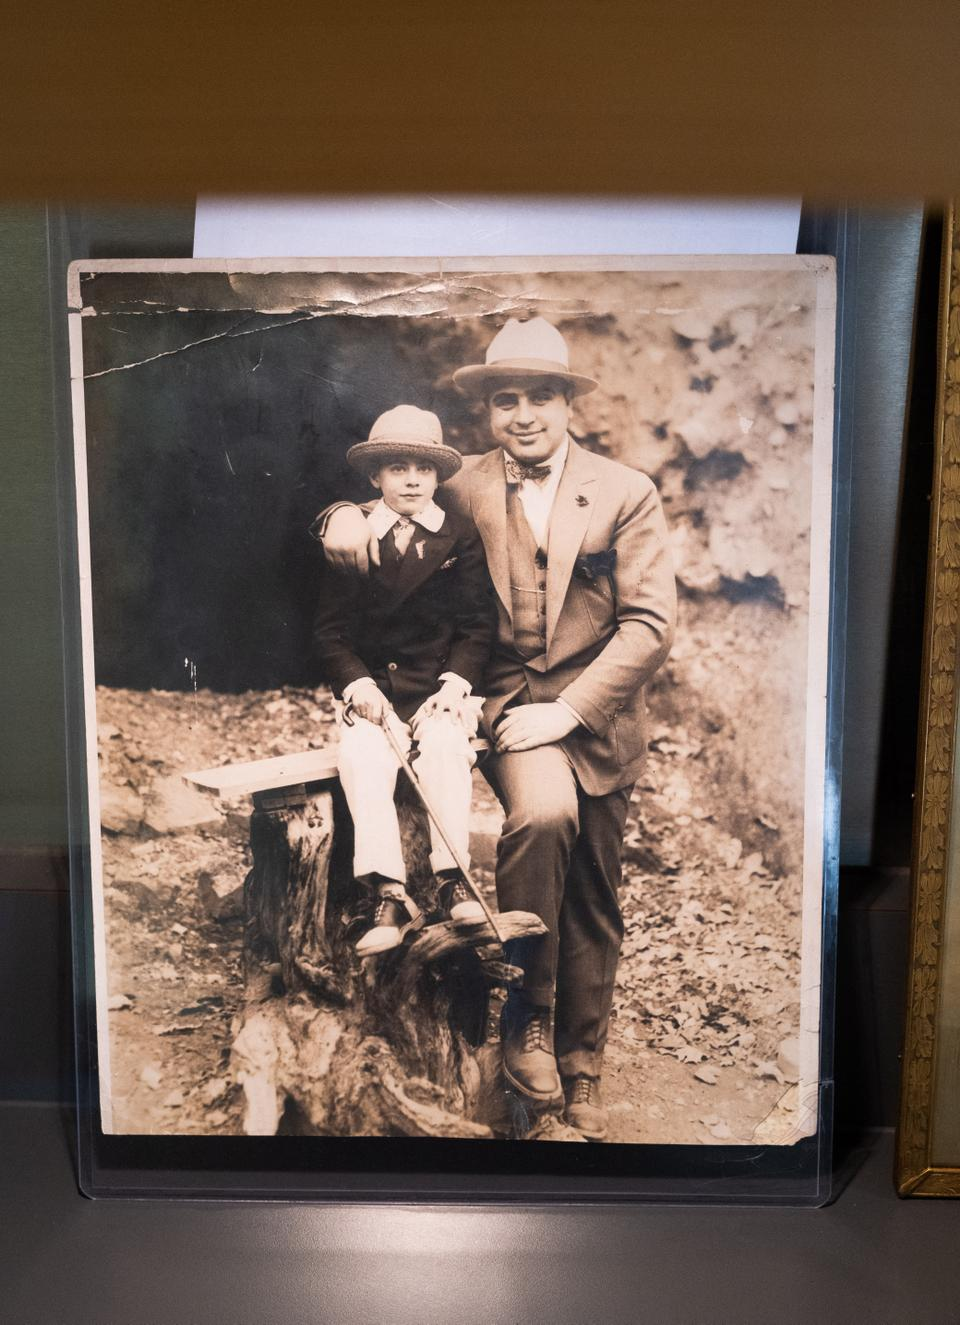 A photograph of Al Capone with his son, Sonny, is displayed at Witherell's auction house in Sacramento, California